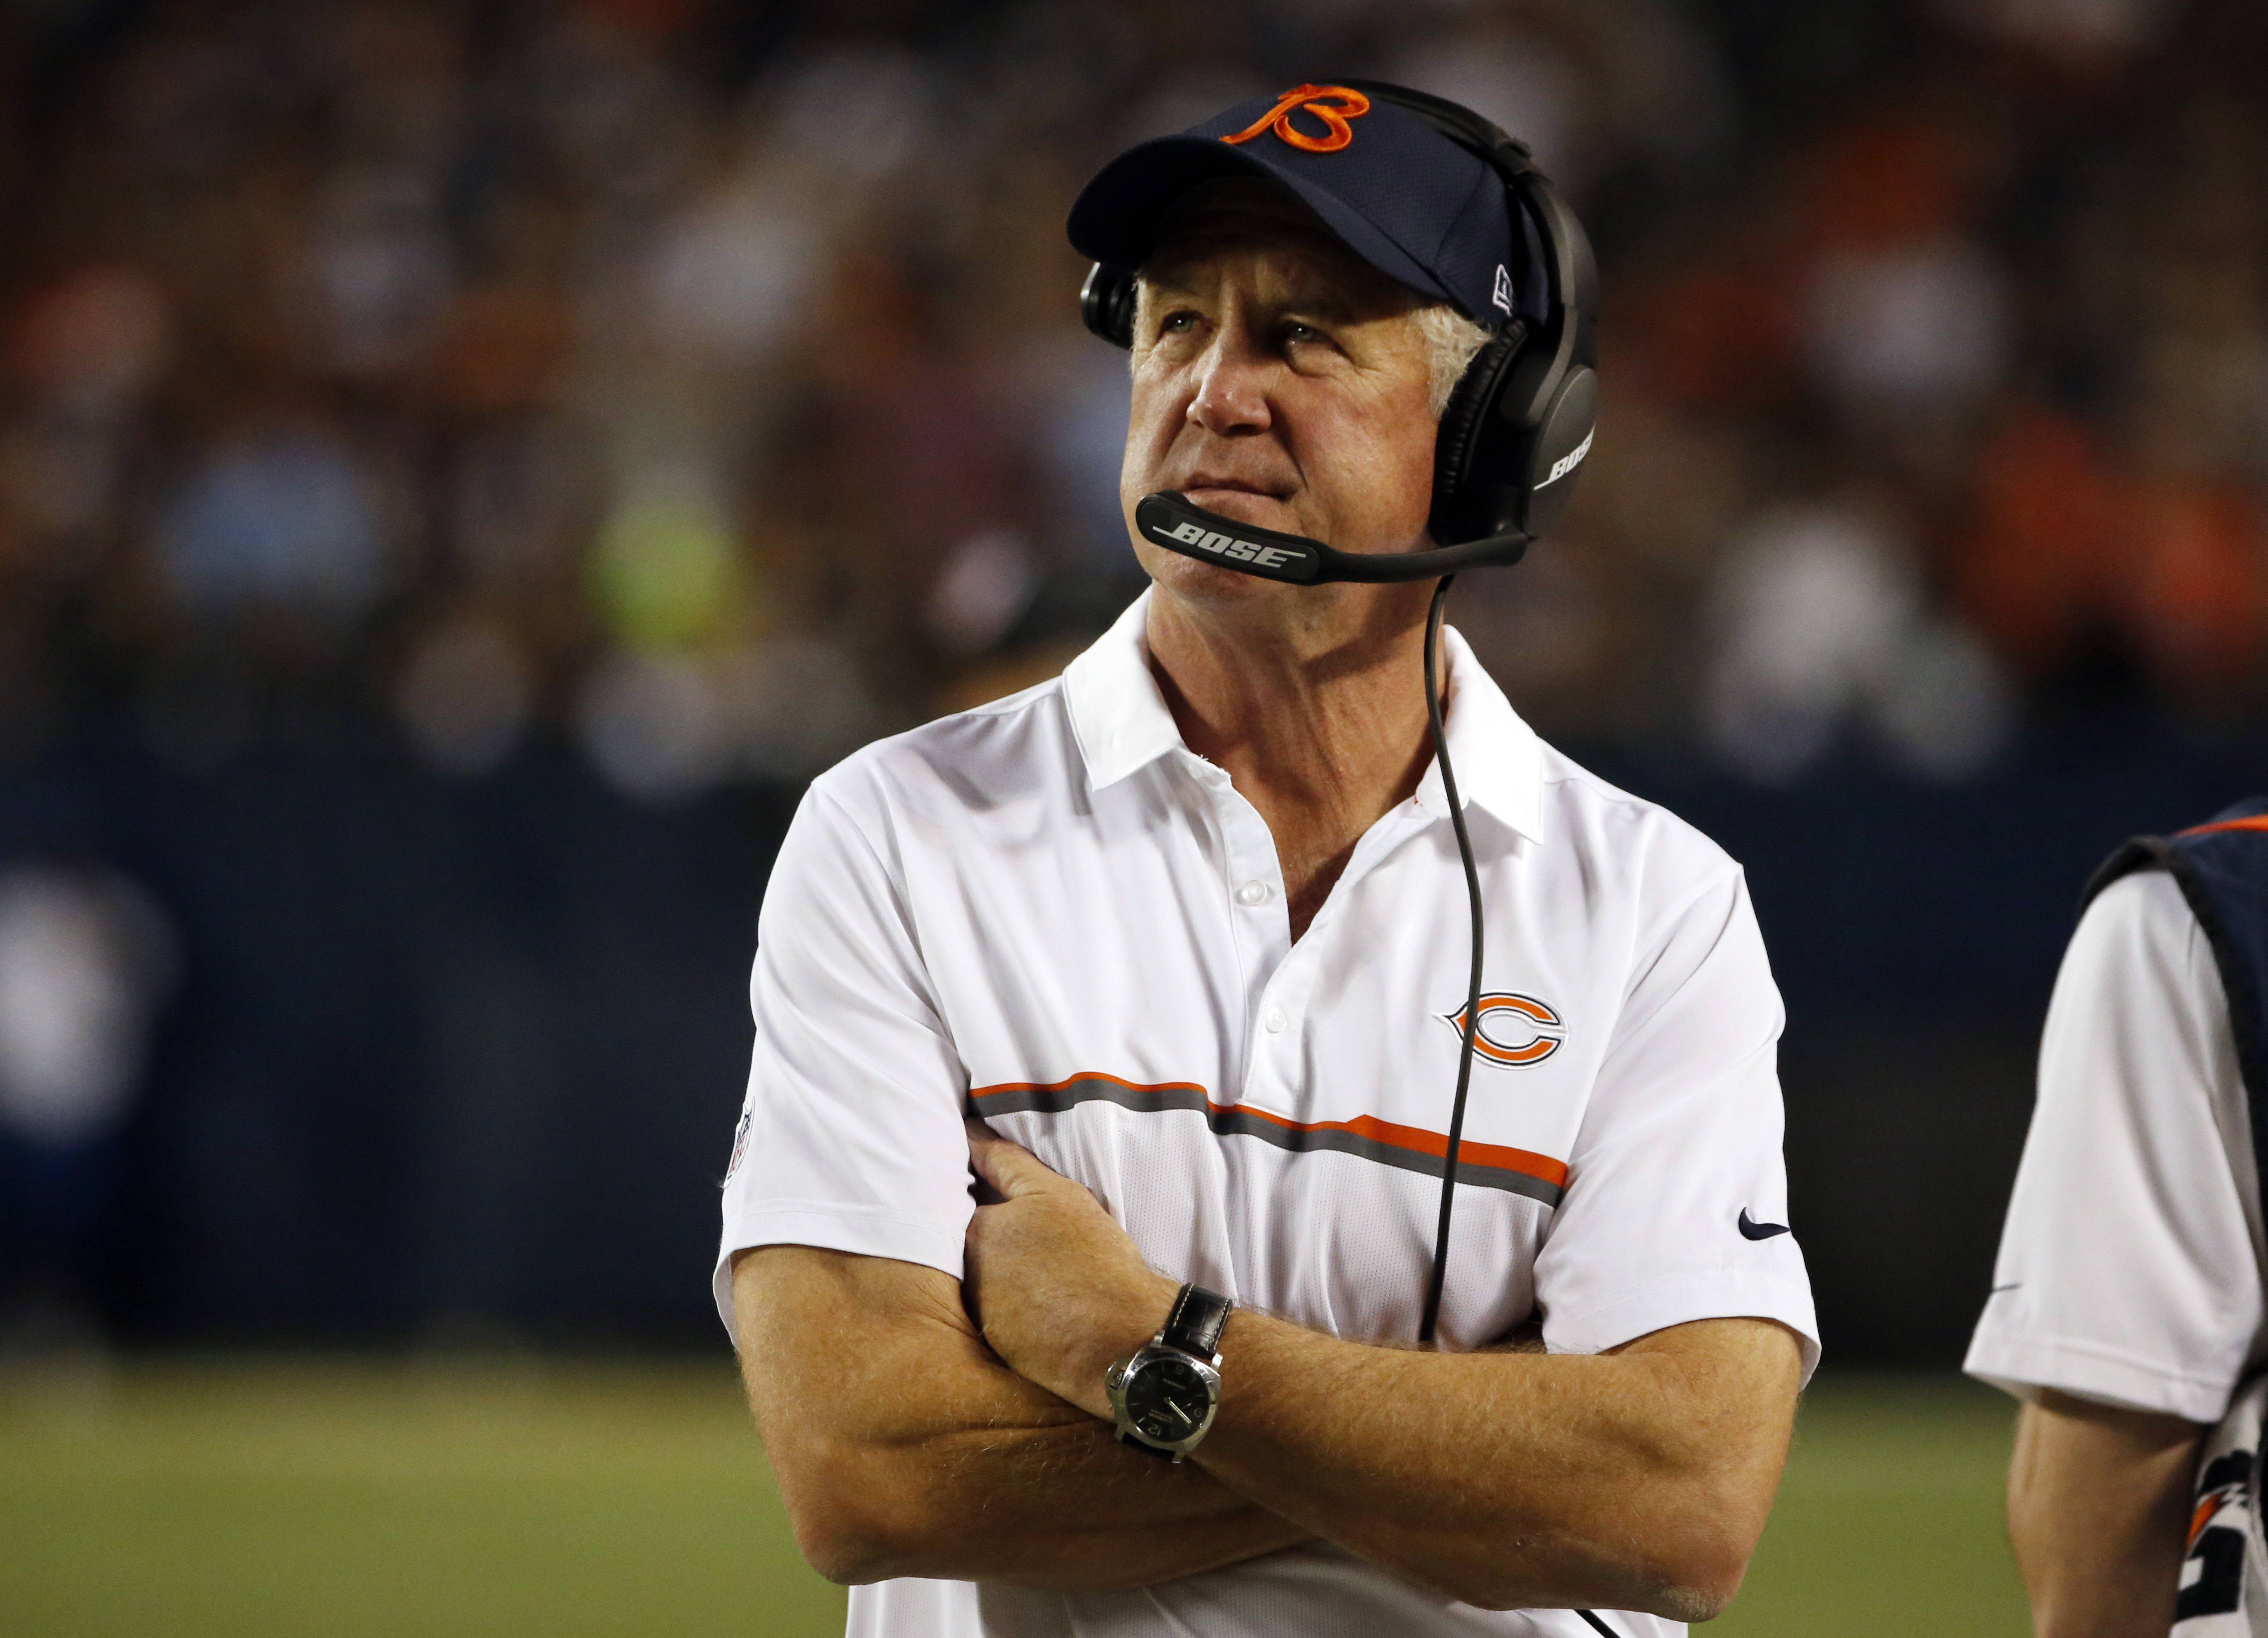 With nine players on injured reserved and two others on the physically unable to perform list, Bears head coach John Fox had turned to younger and inexperience players to fill the holes on his 0-3 team.